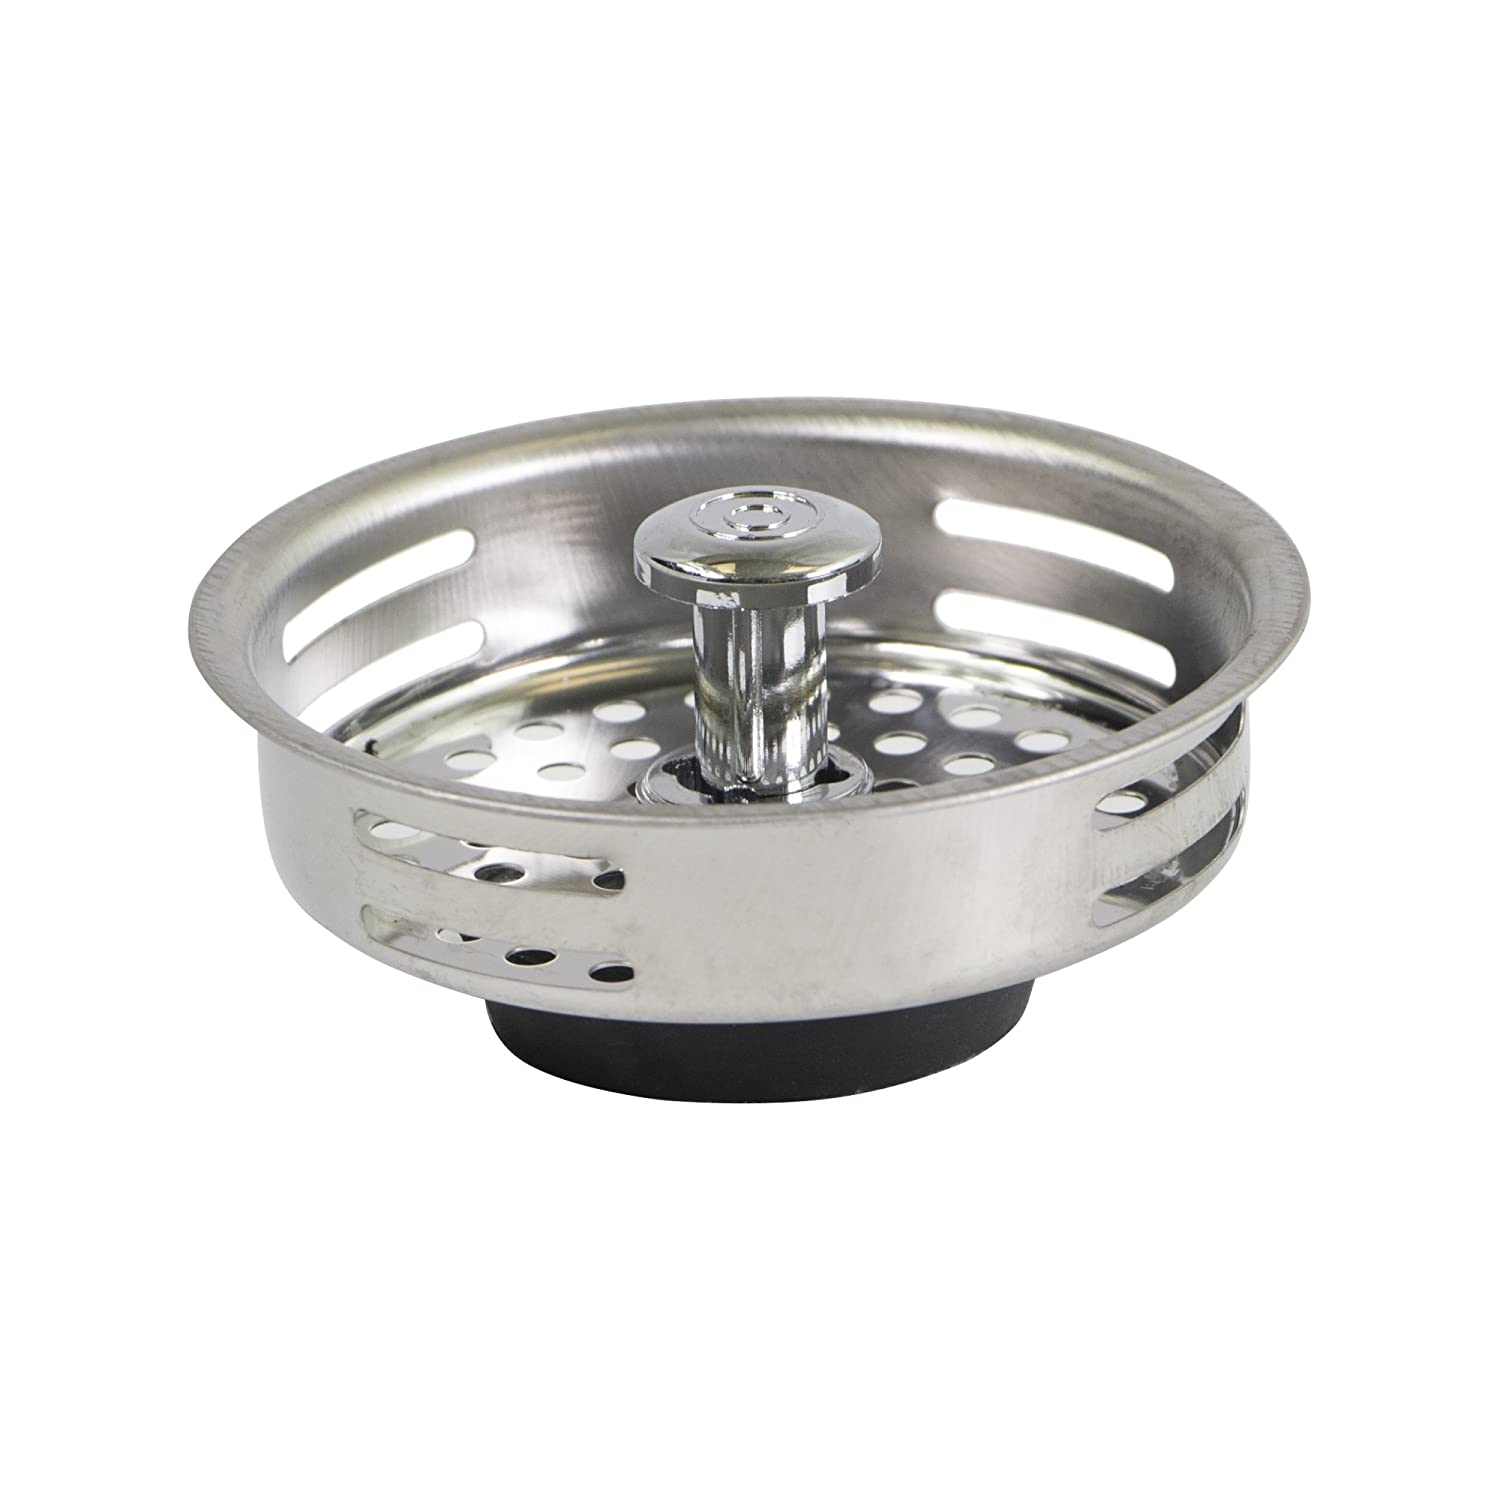 Everflow 7621 Stainless Steel Kitchen Sink Strainer Basket - Replacement for Standard Drains (3-1/2 Inch) - Universal Style Rubber Stopper